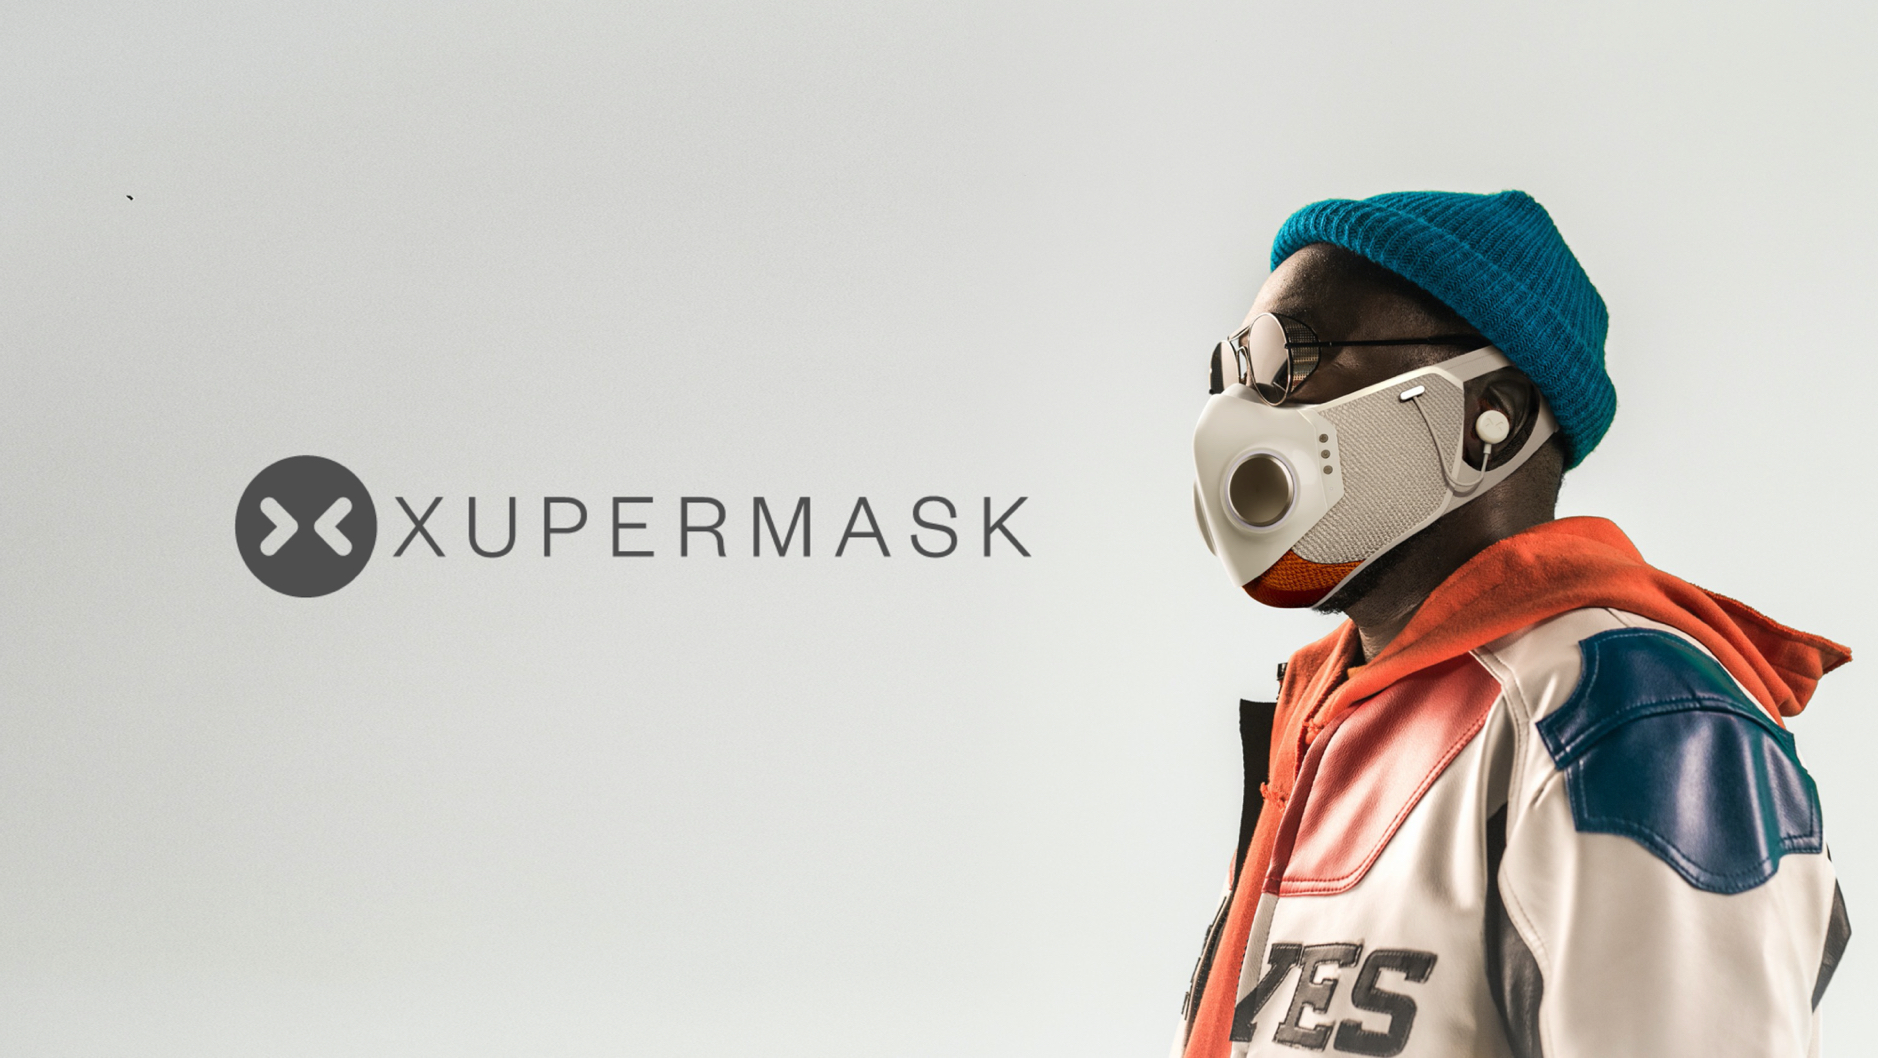 An advertisement with will.i.am wearing the Xupermask